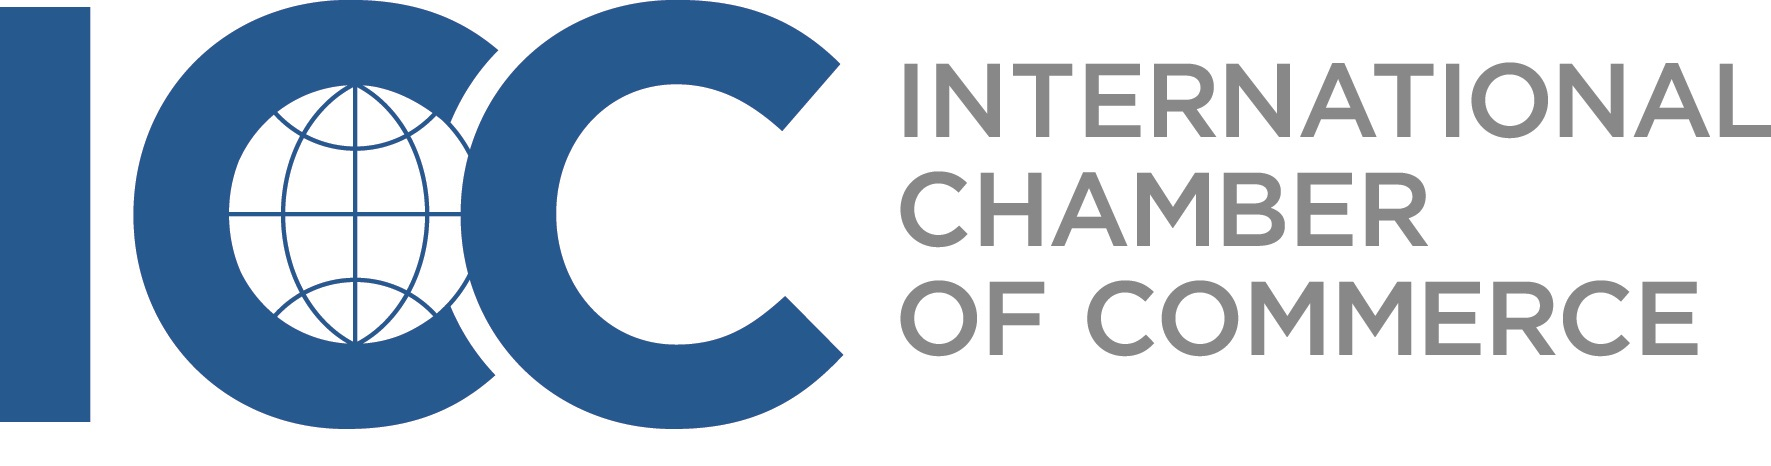 Chambre commerce international opinions on international for Chambre commerce international